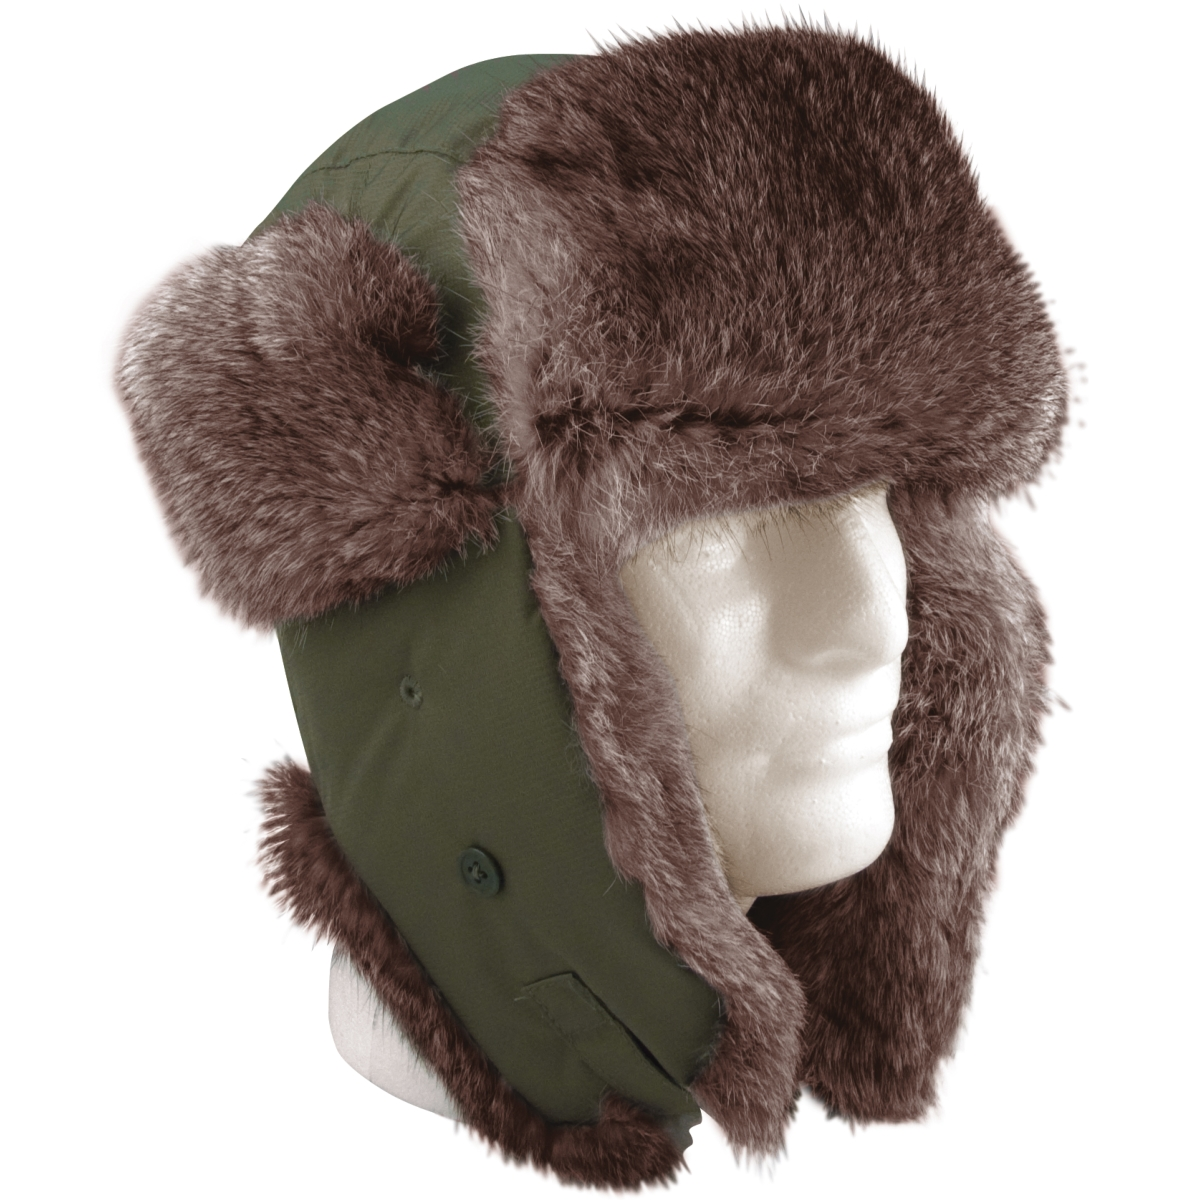 New, Vintage Flyers Winter Hat, Olive w/Brown Fur